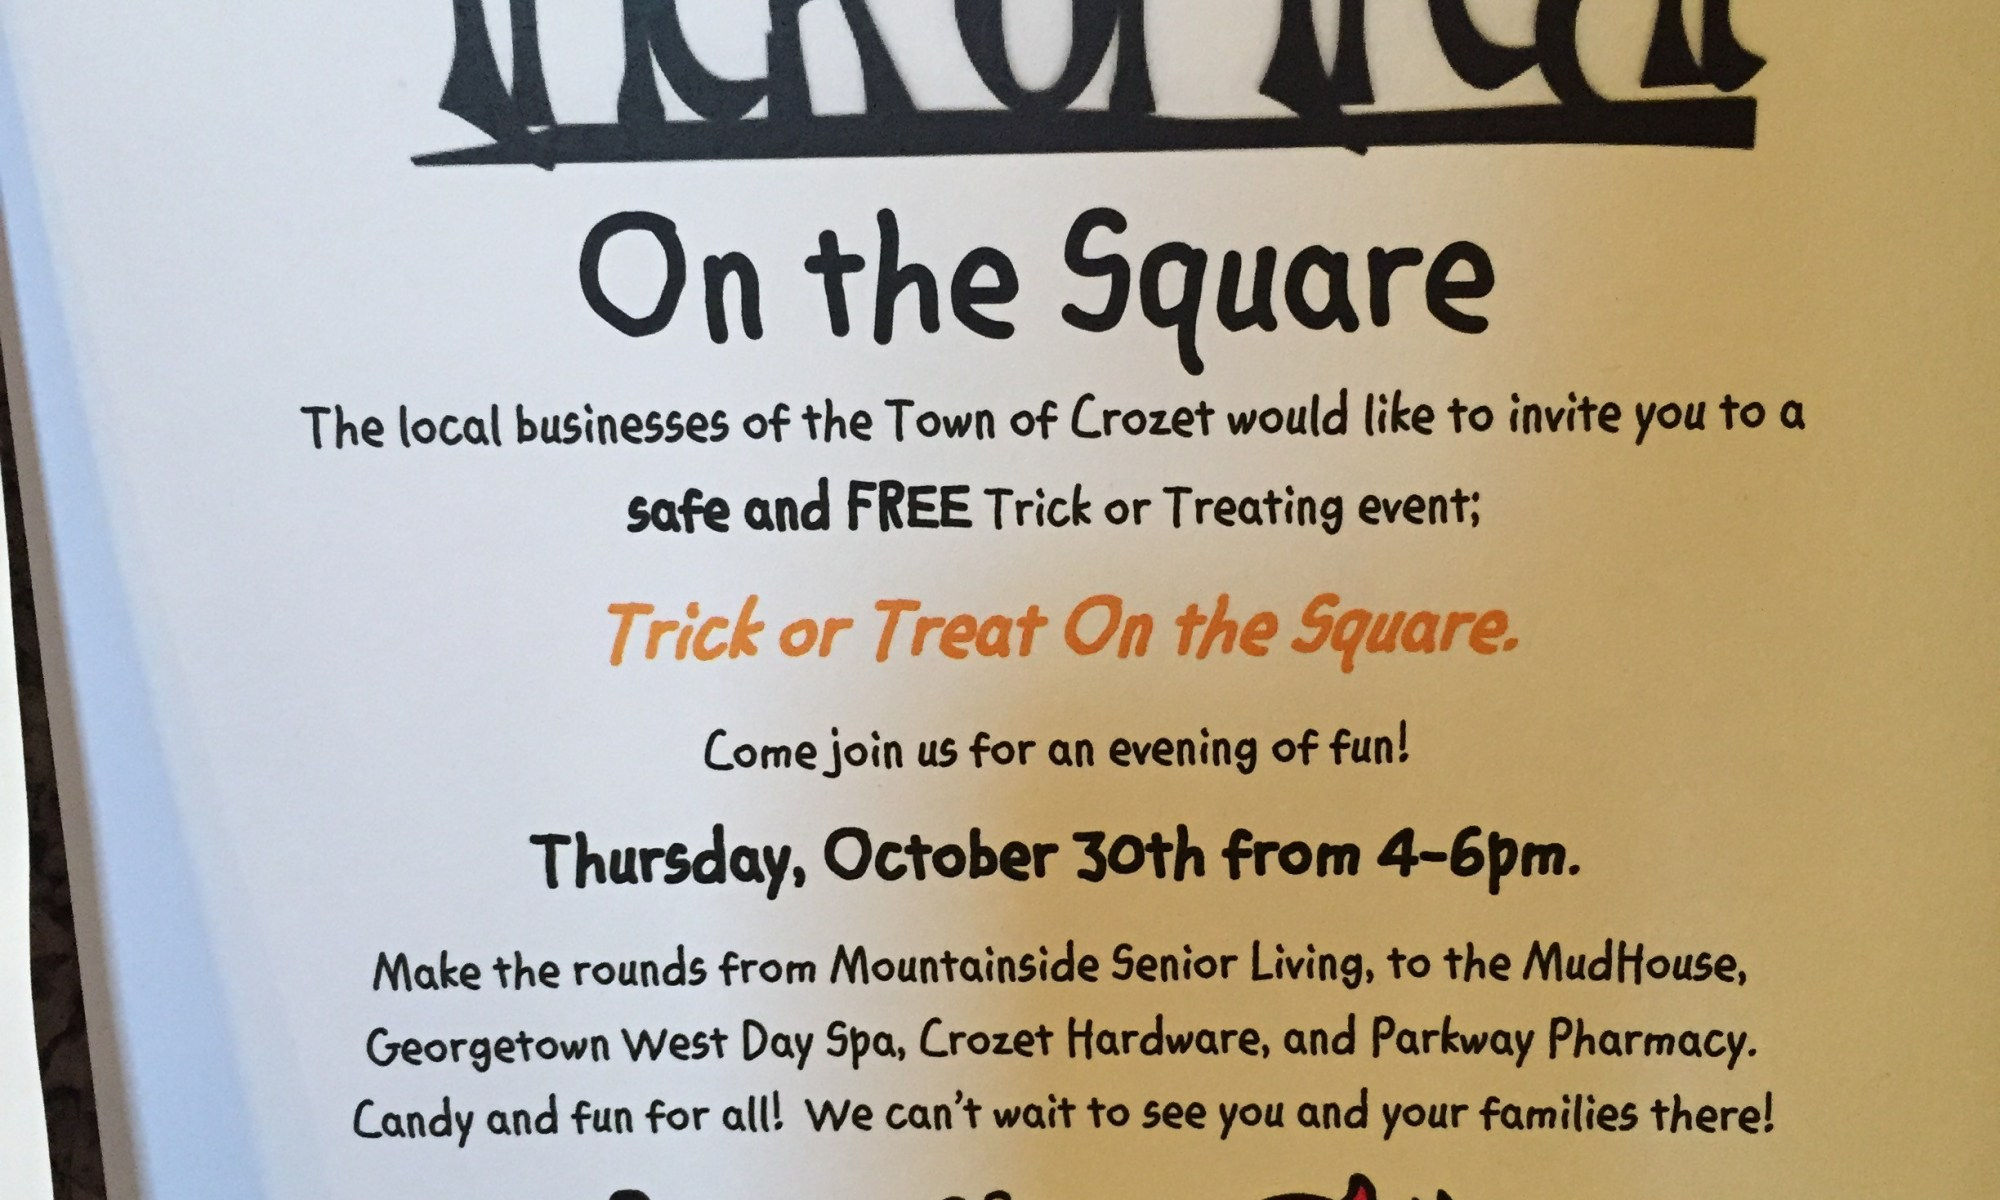 Trick or Treat on the Square - 30 October 2014